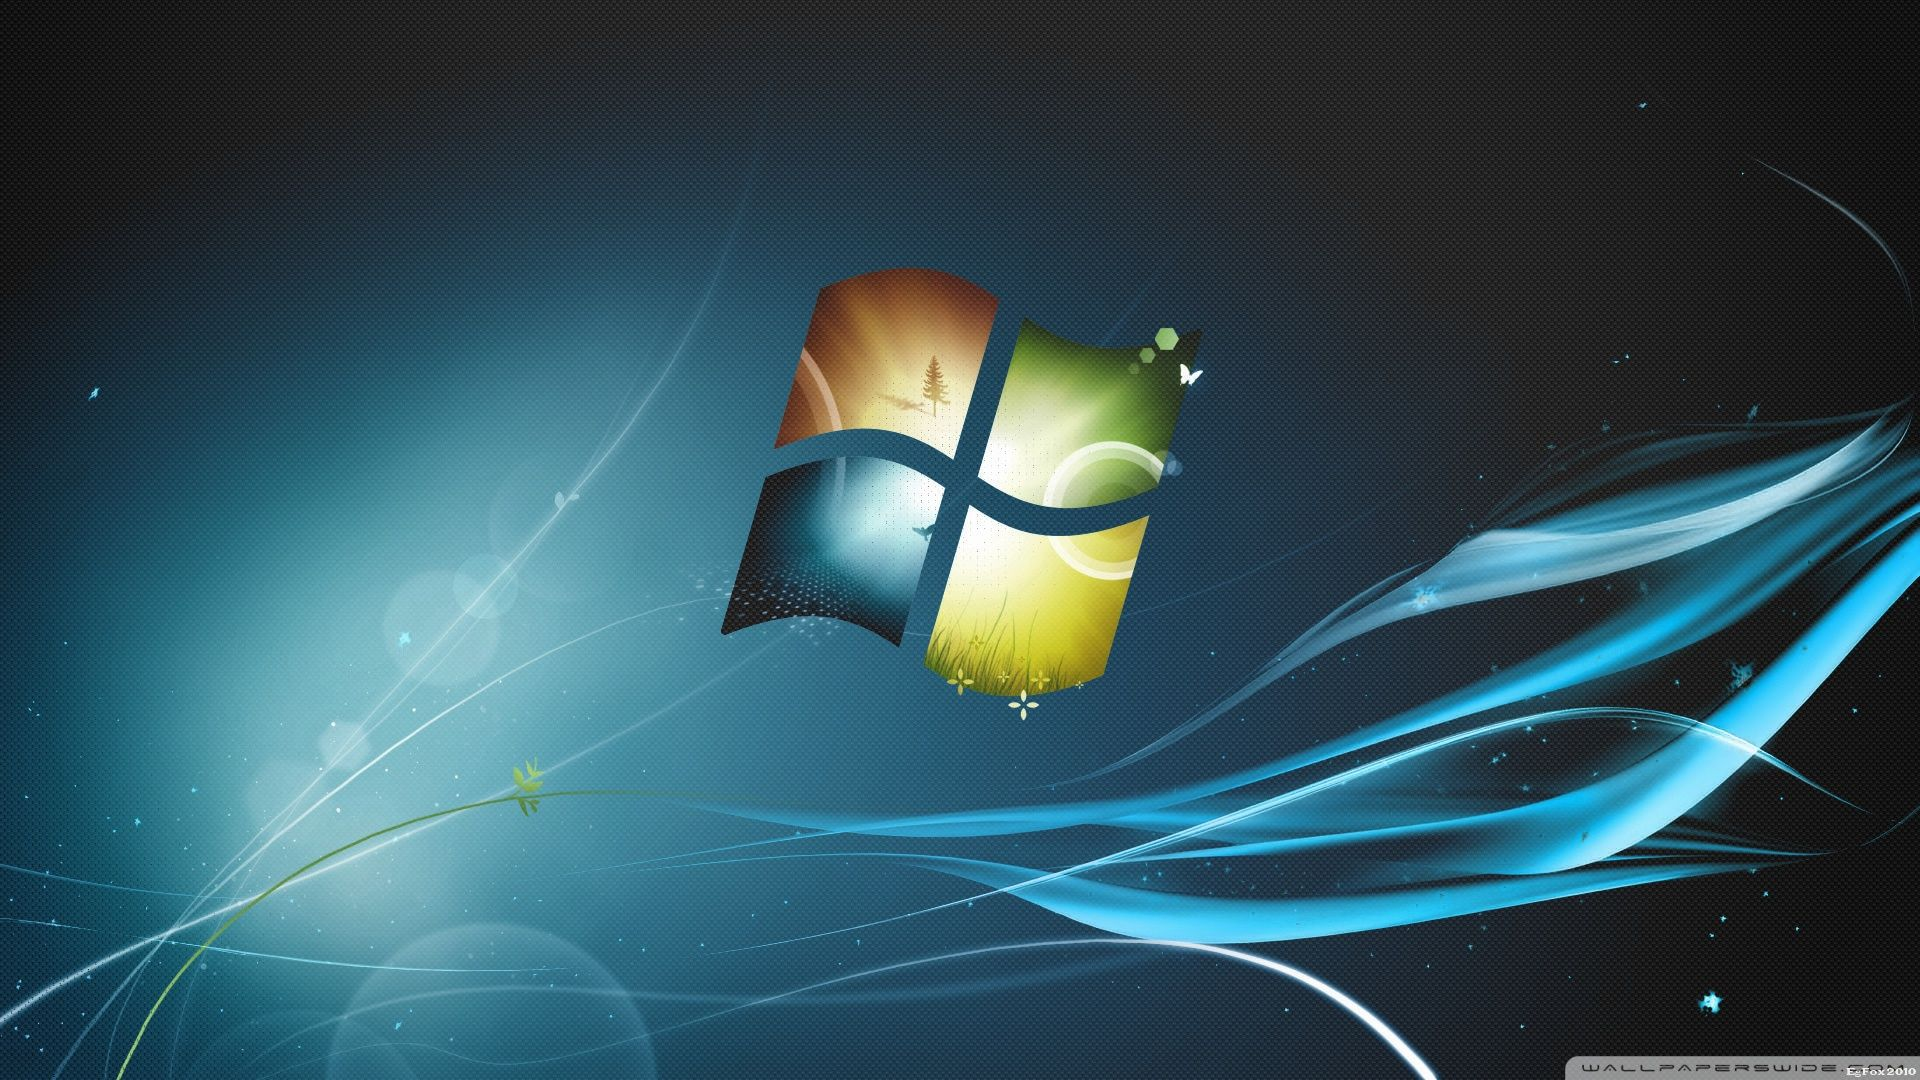 Cool Windows XP Wallpapers In HD For Free Download